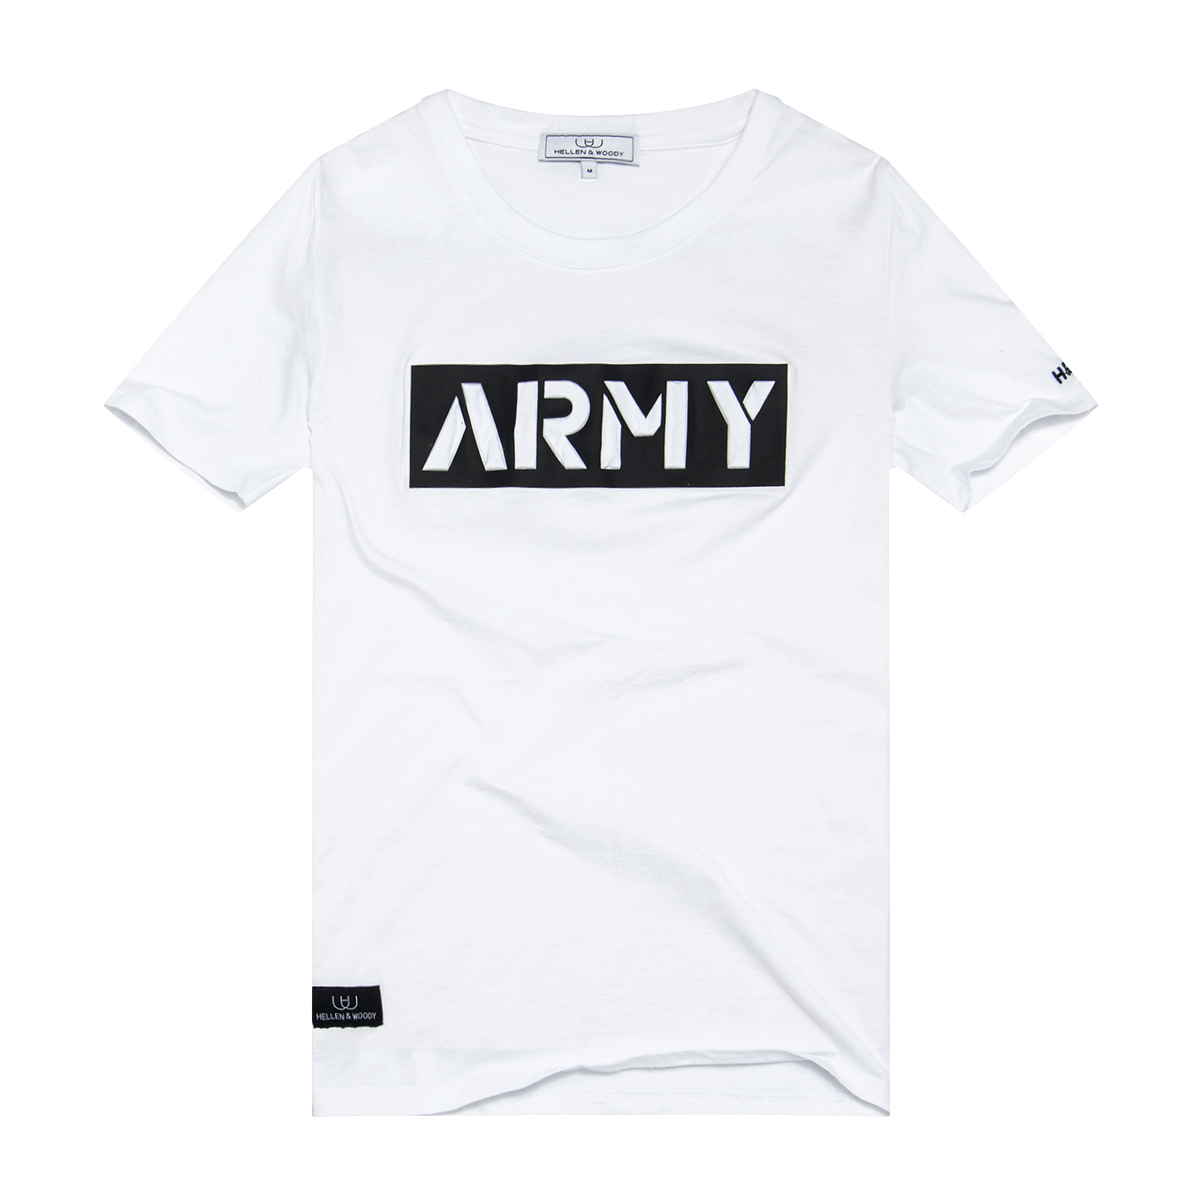 HELLEN&WOODY/H&W Simple Three-dimensional ARMY Crew Neck Men's Cotton Short Sleeve T-Shirt 1701